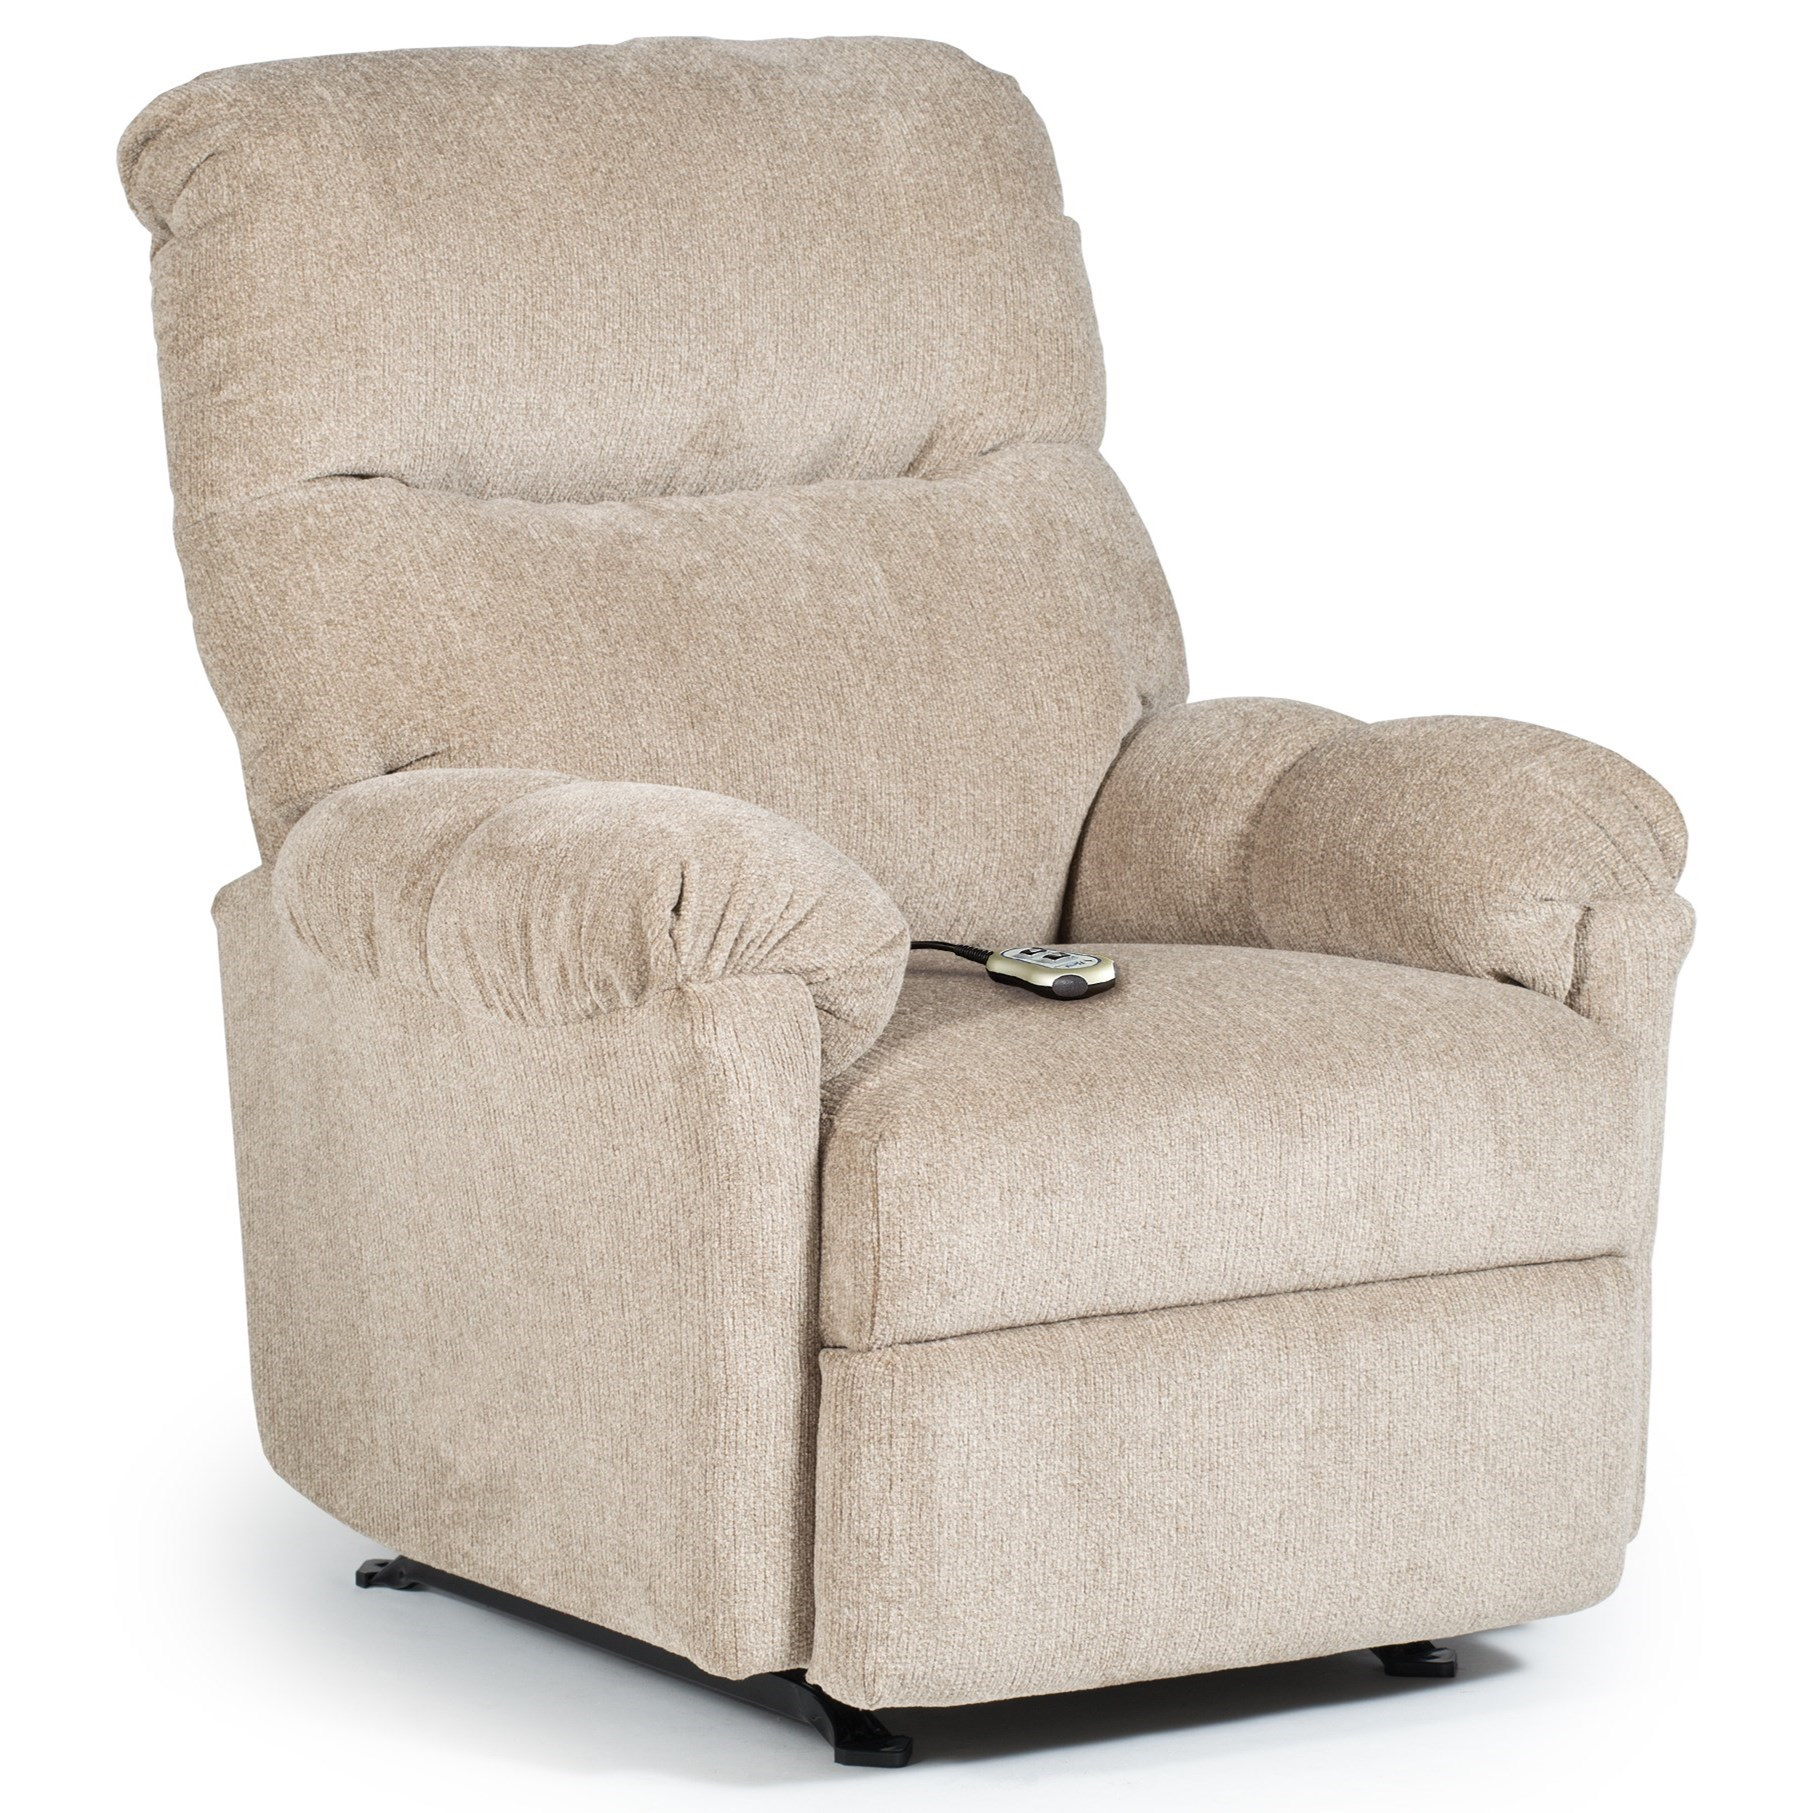 Medium Recliners Balmore Power Wallhugger Recliner by Best Home Furnishings at SuperStore